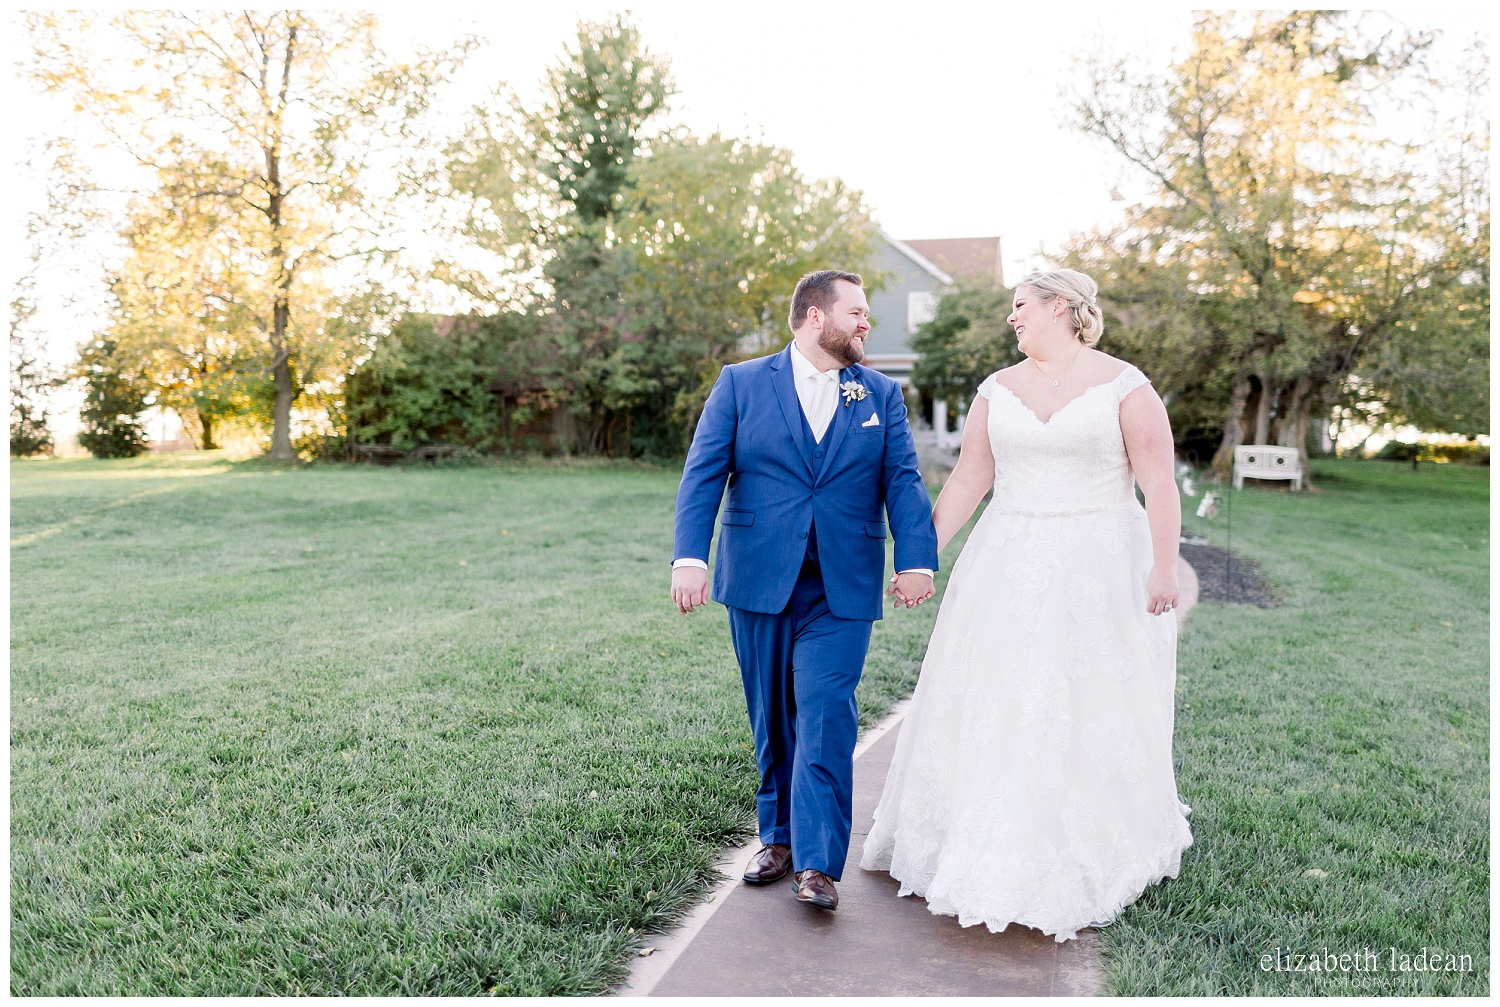 -Legact-at-Green-Hills-Kansas-City-Wedding-Photographer-L+B-1020-elizabeth-ladean-photography-photo_2120.jpg